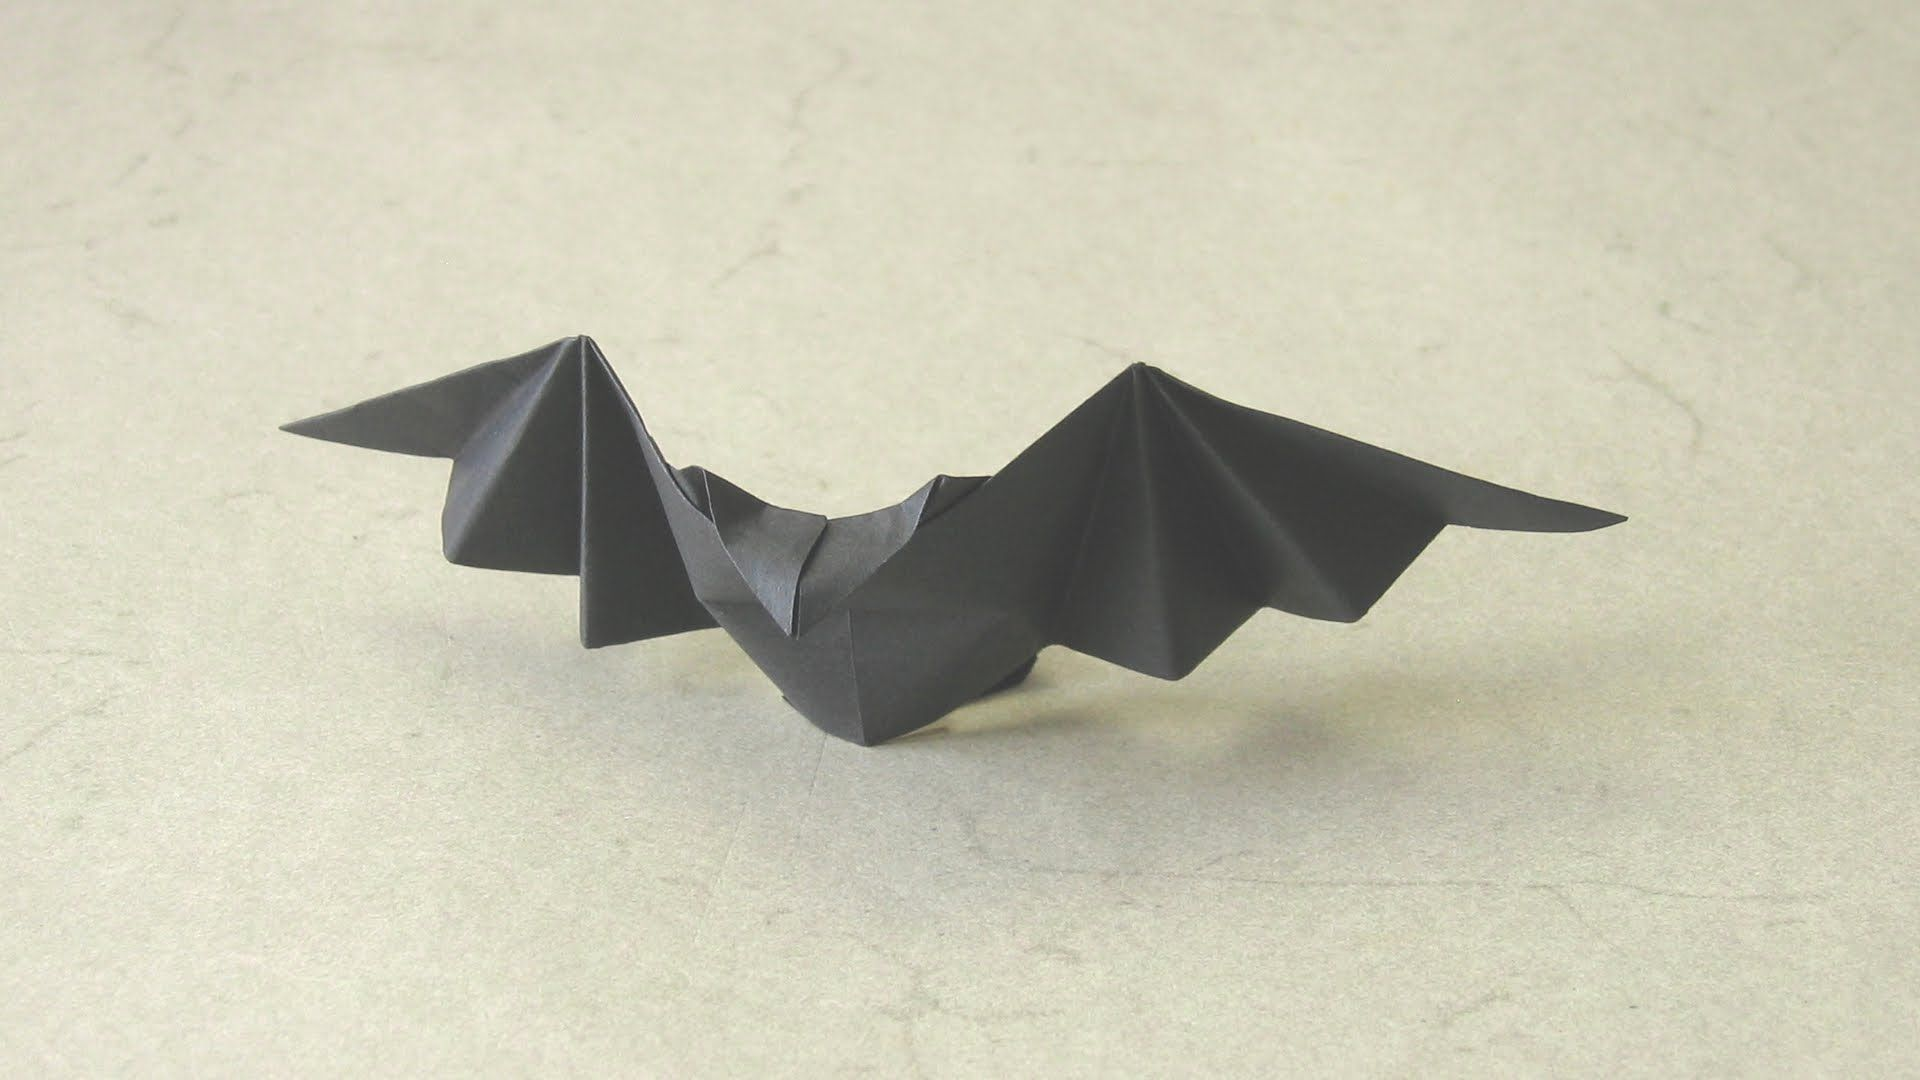 Halloween origami instructions patty bat talo kawasaki forms halloween origami instructions patty bat talo kawasaki jeuxipadfo Gallery